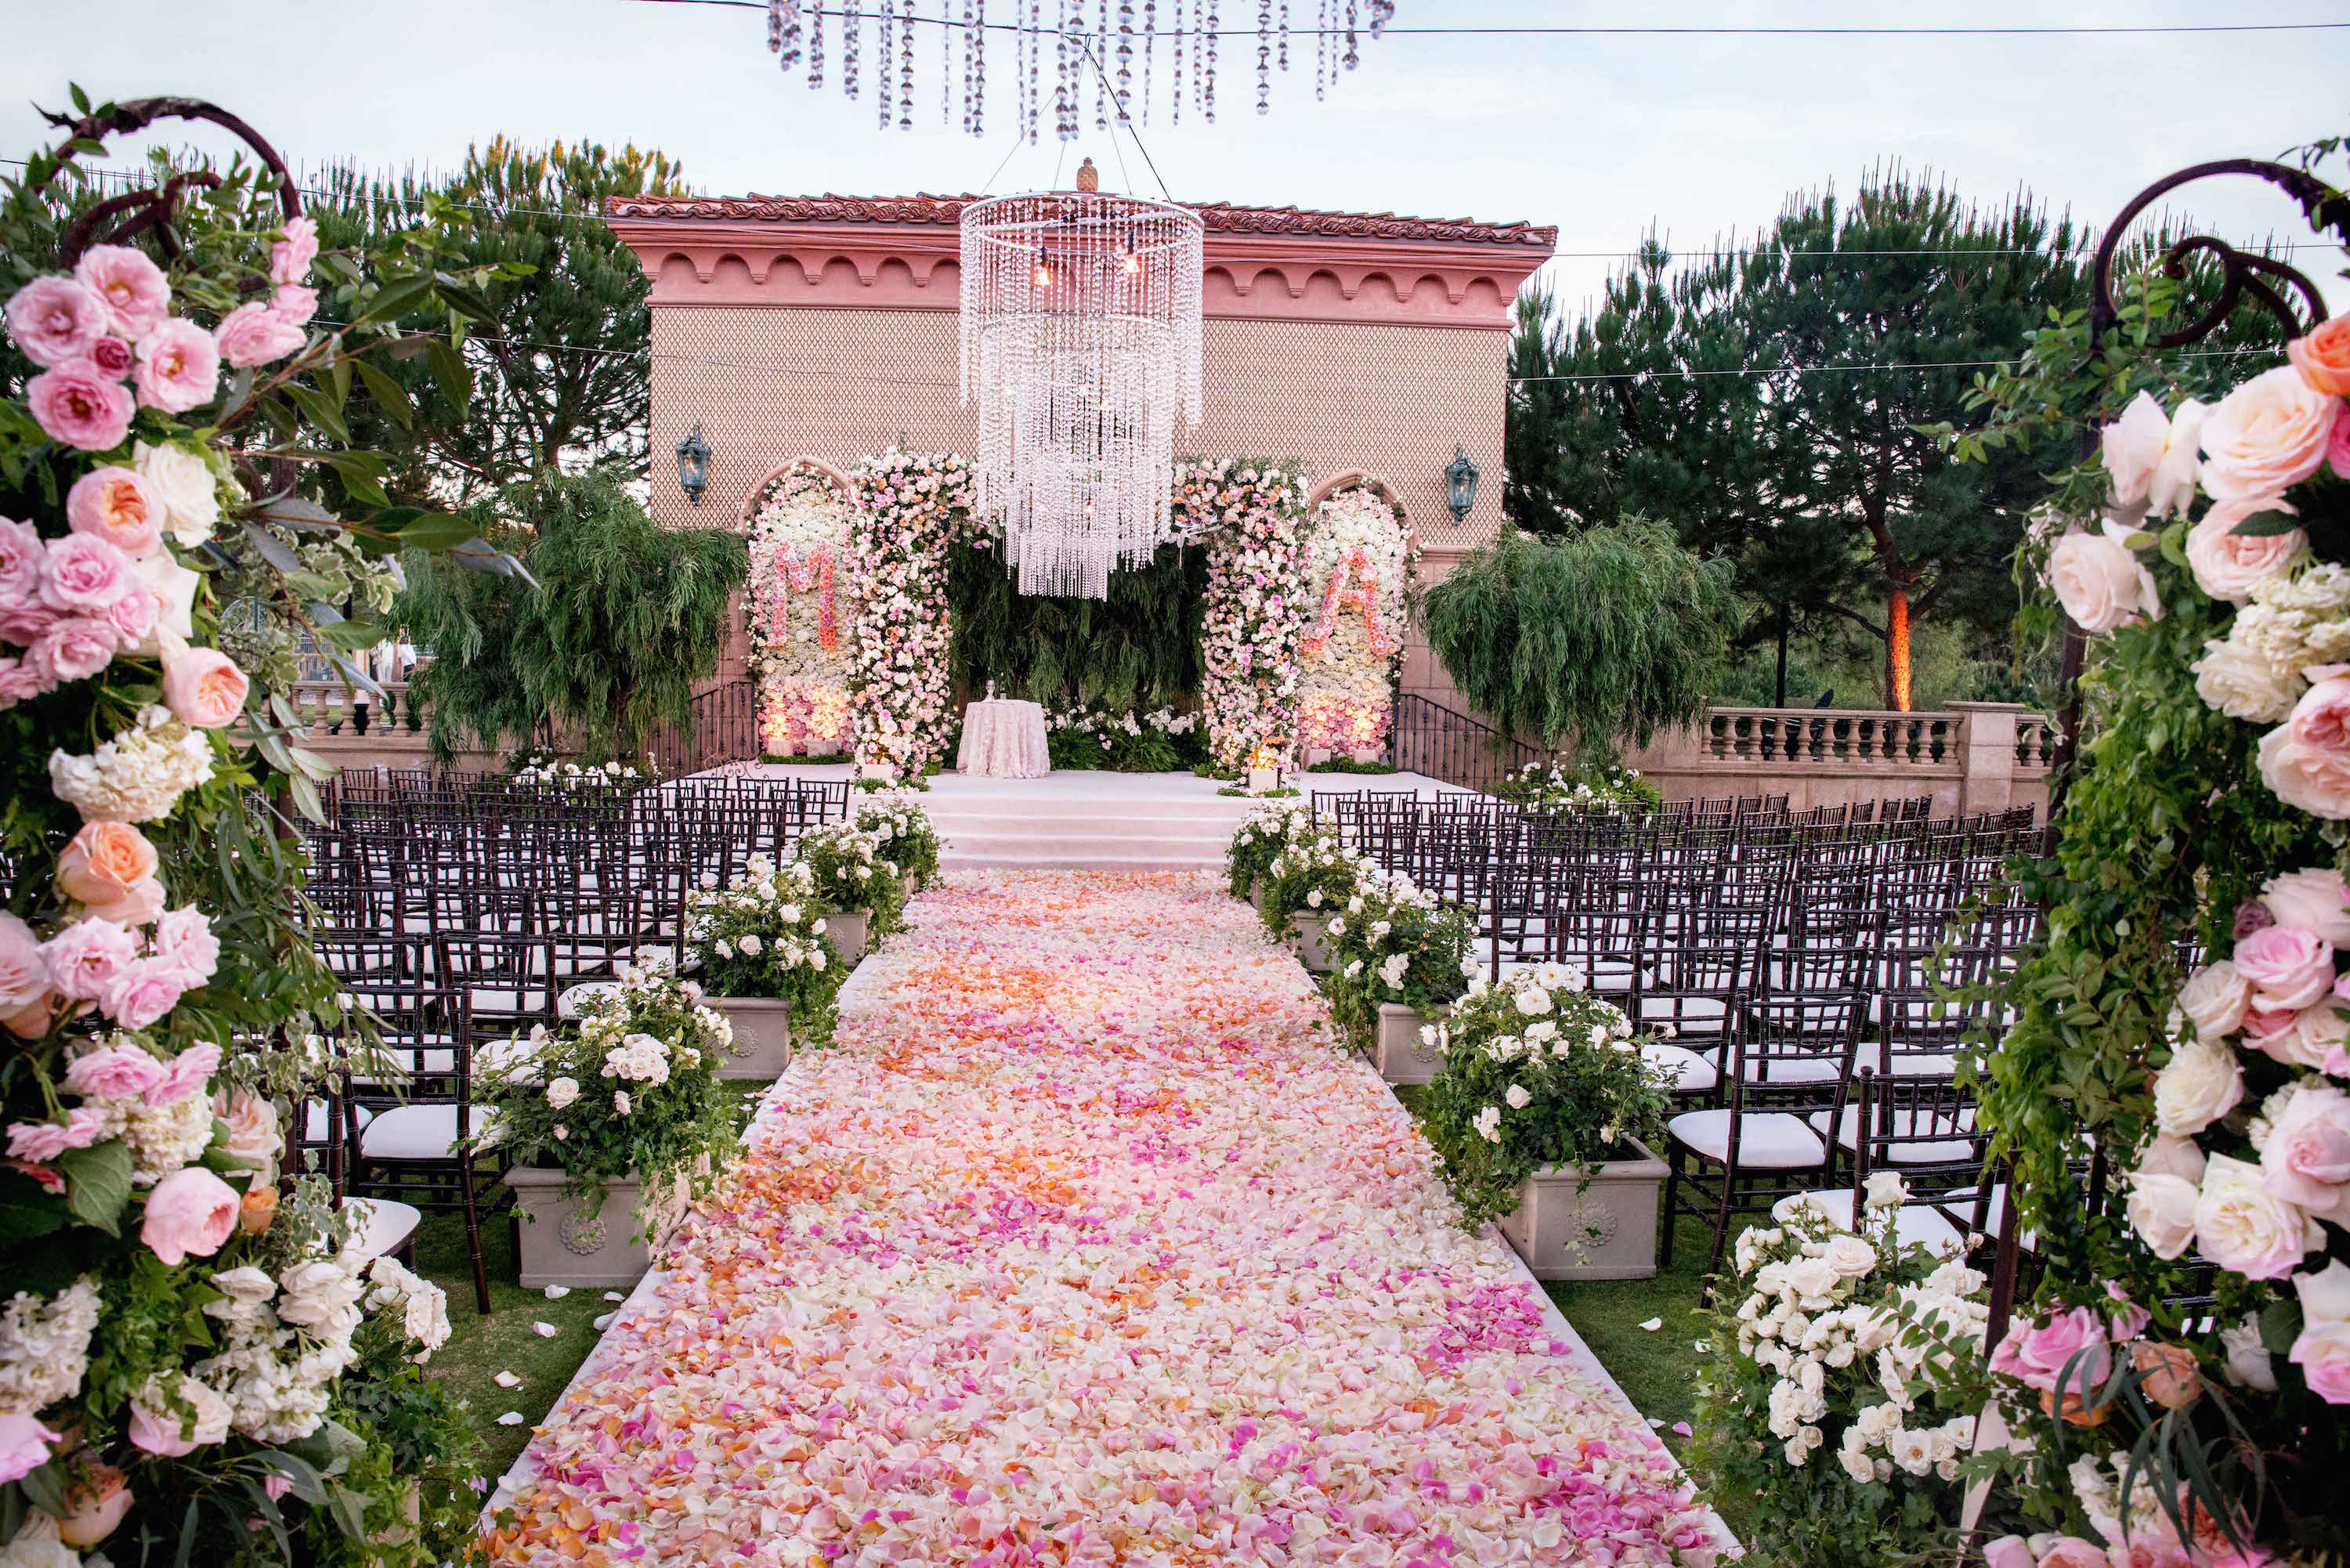 Wedding Ideas: Beautiful Ceremony Floral Aisle Runner